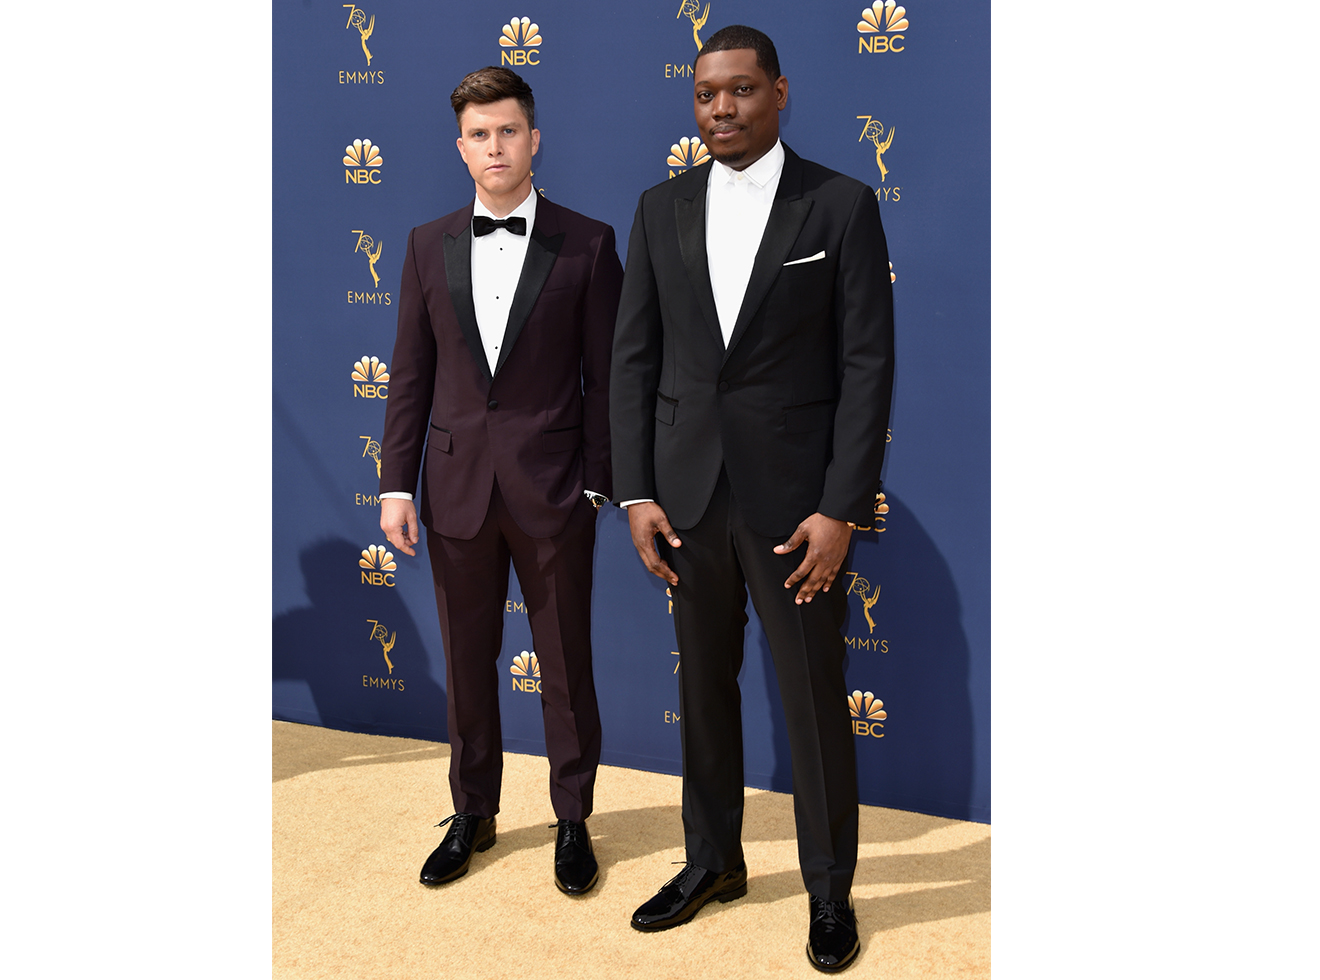 Colin Jost (L) and Michael Che attend the 70th Emmy Awards at Microsoft Theater on September 17, 2018 in Los Angeles, California.